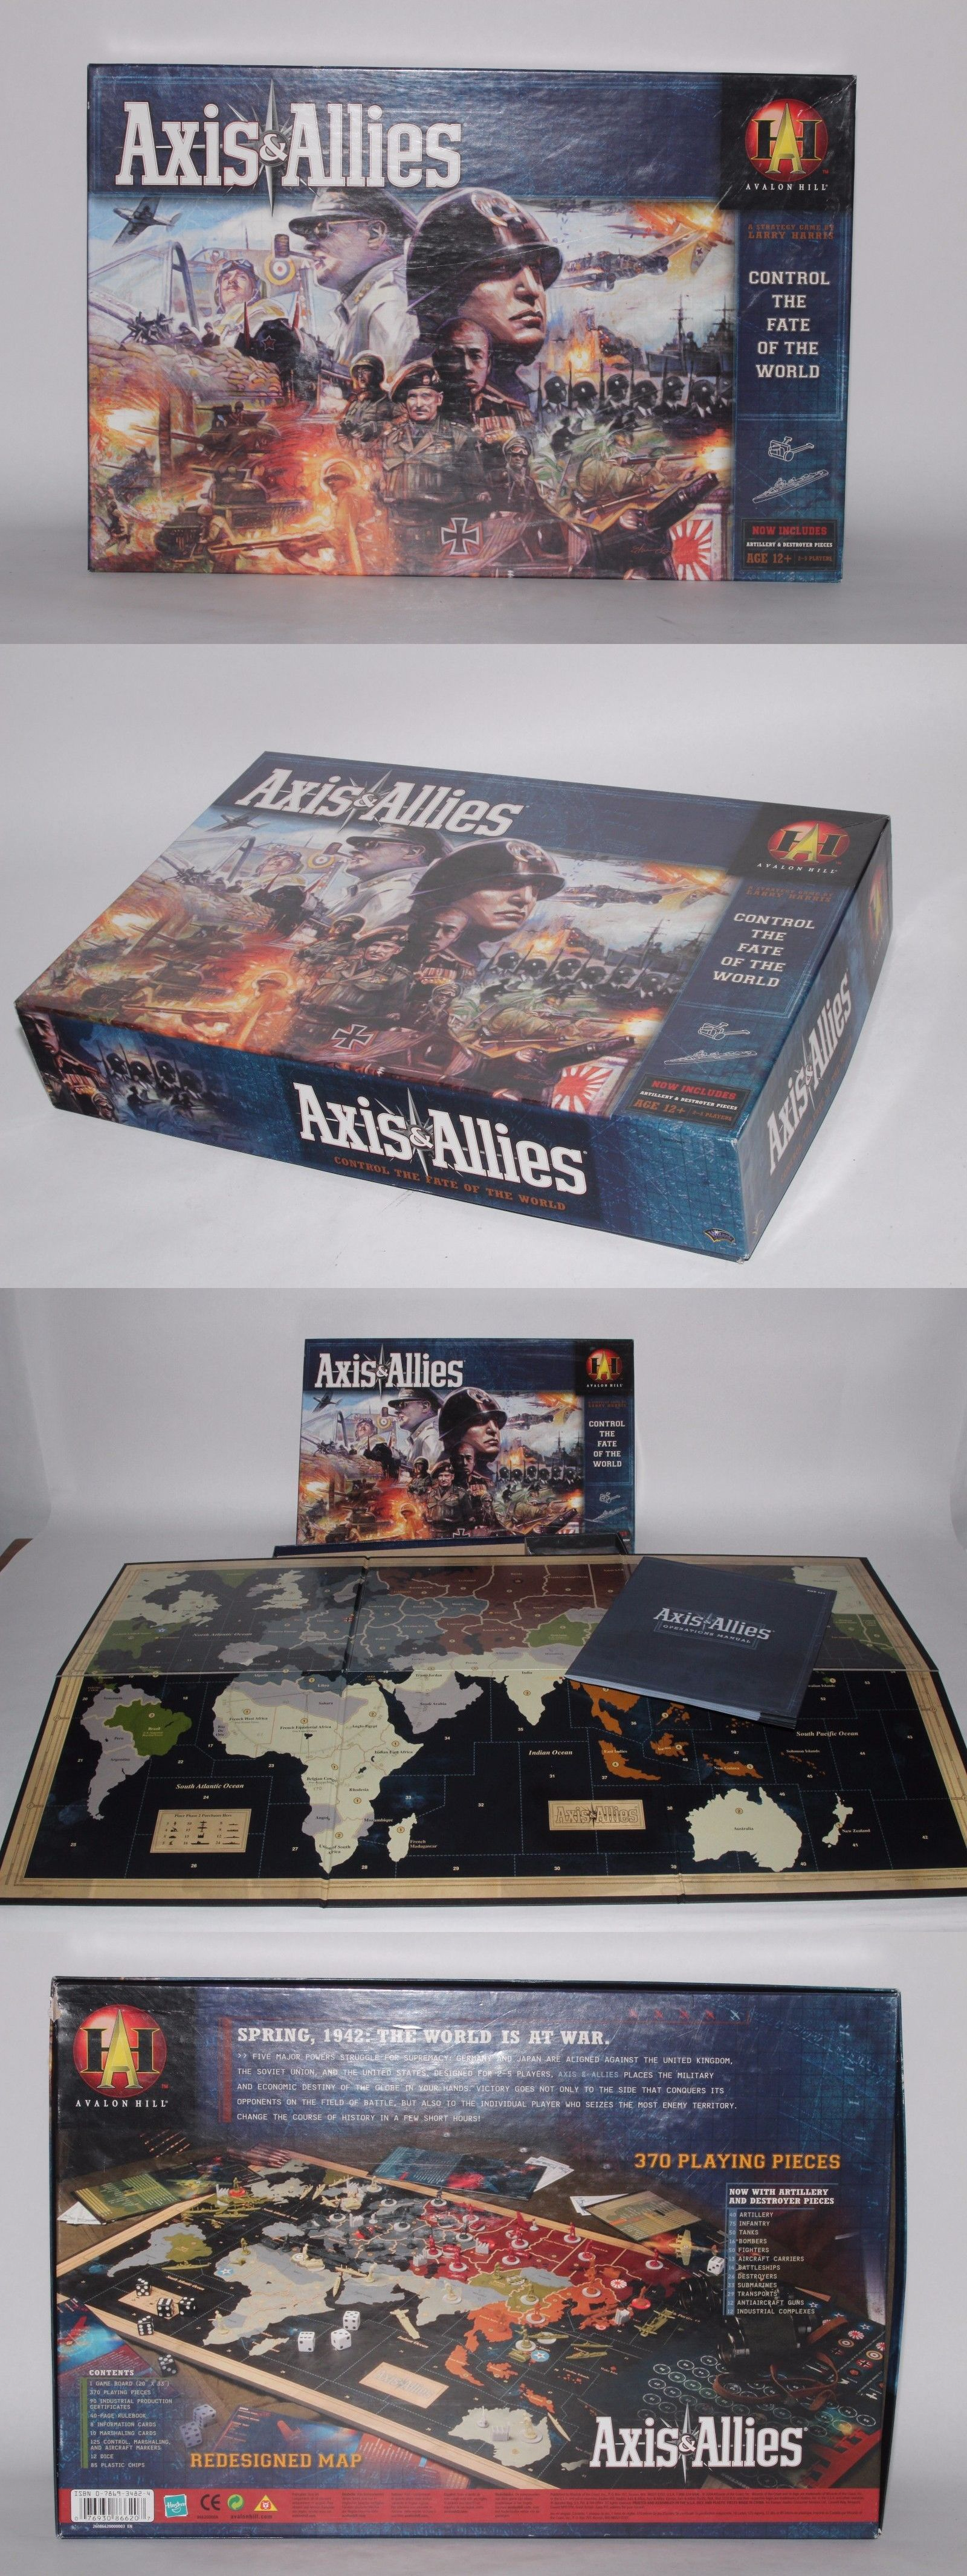 Pin on Axis & Allies